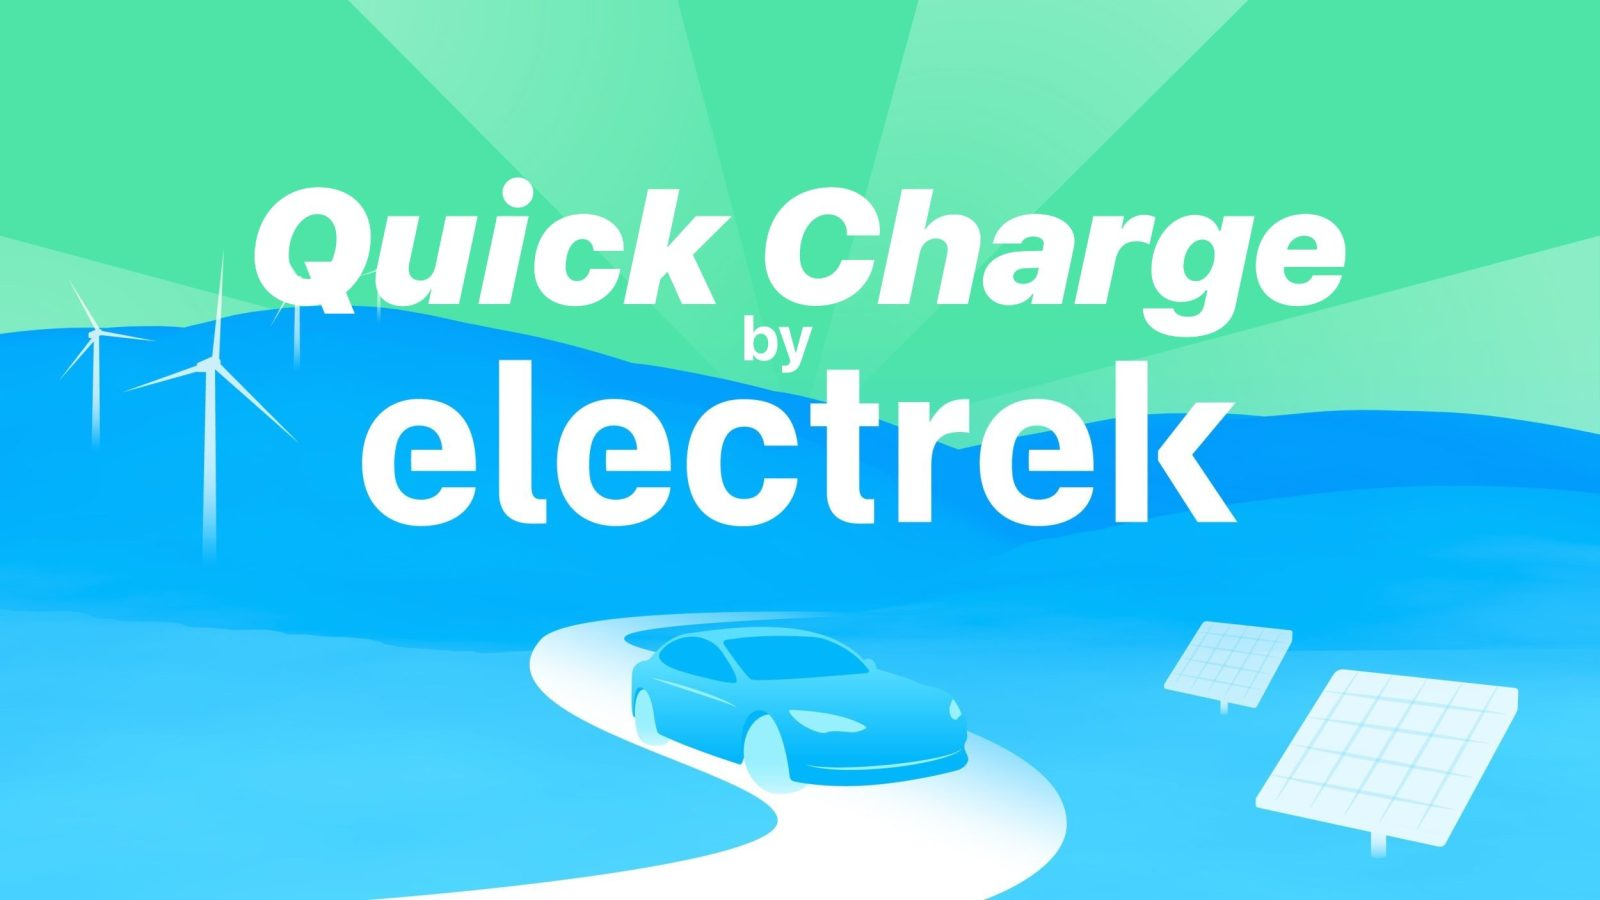 Quick Charge Podcast: September 22, 2021